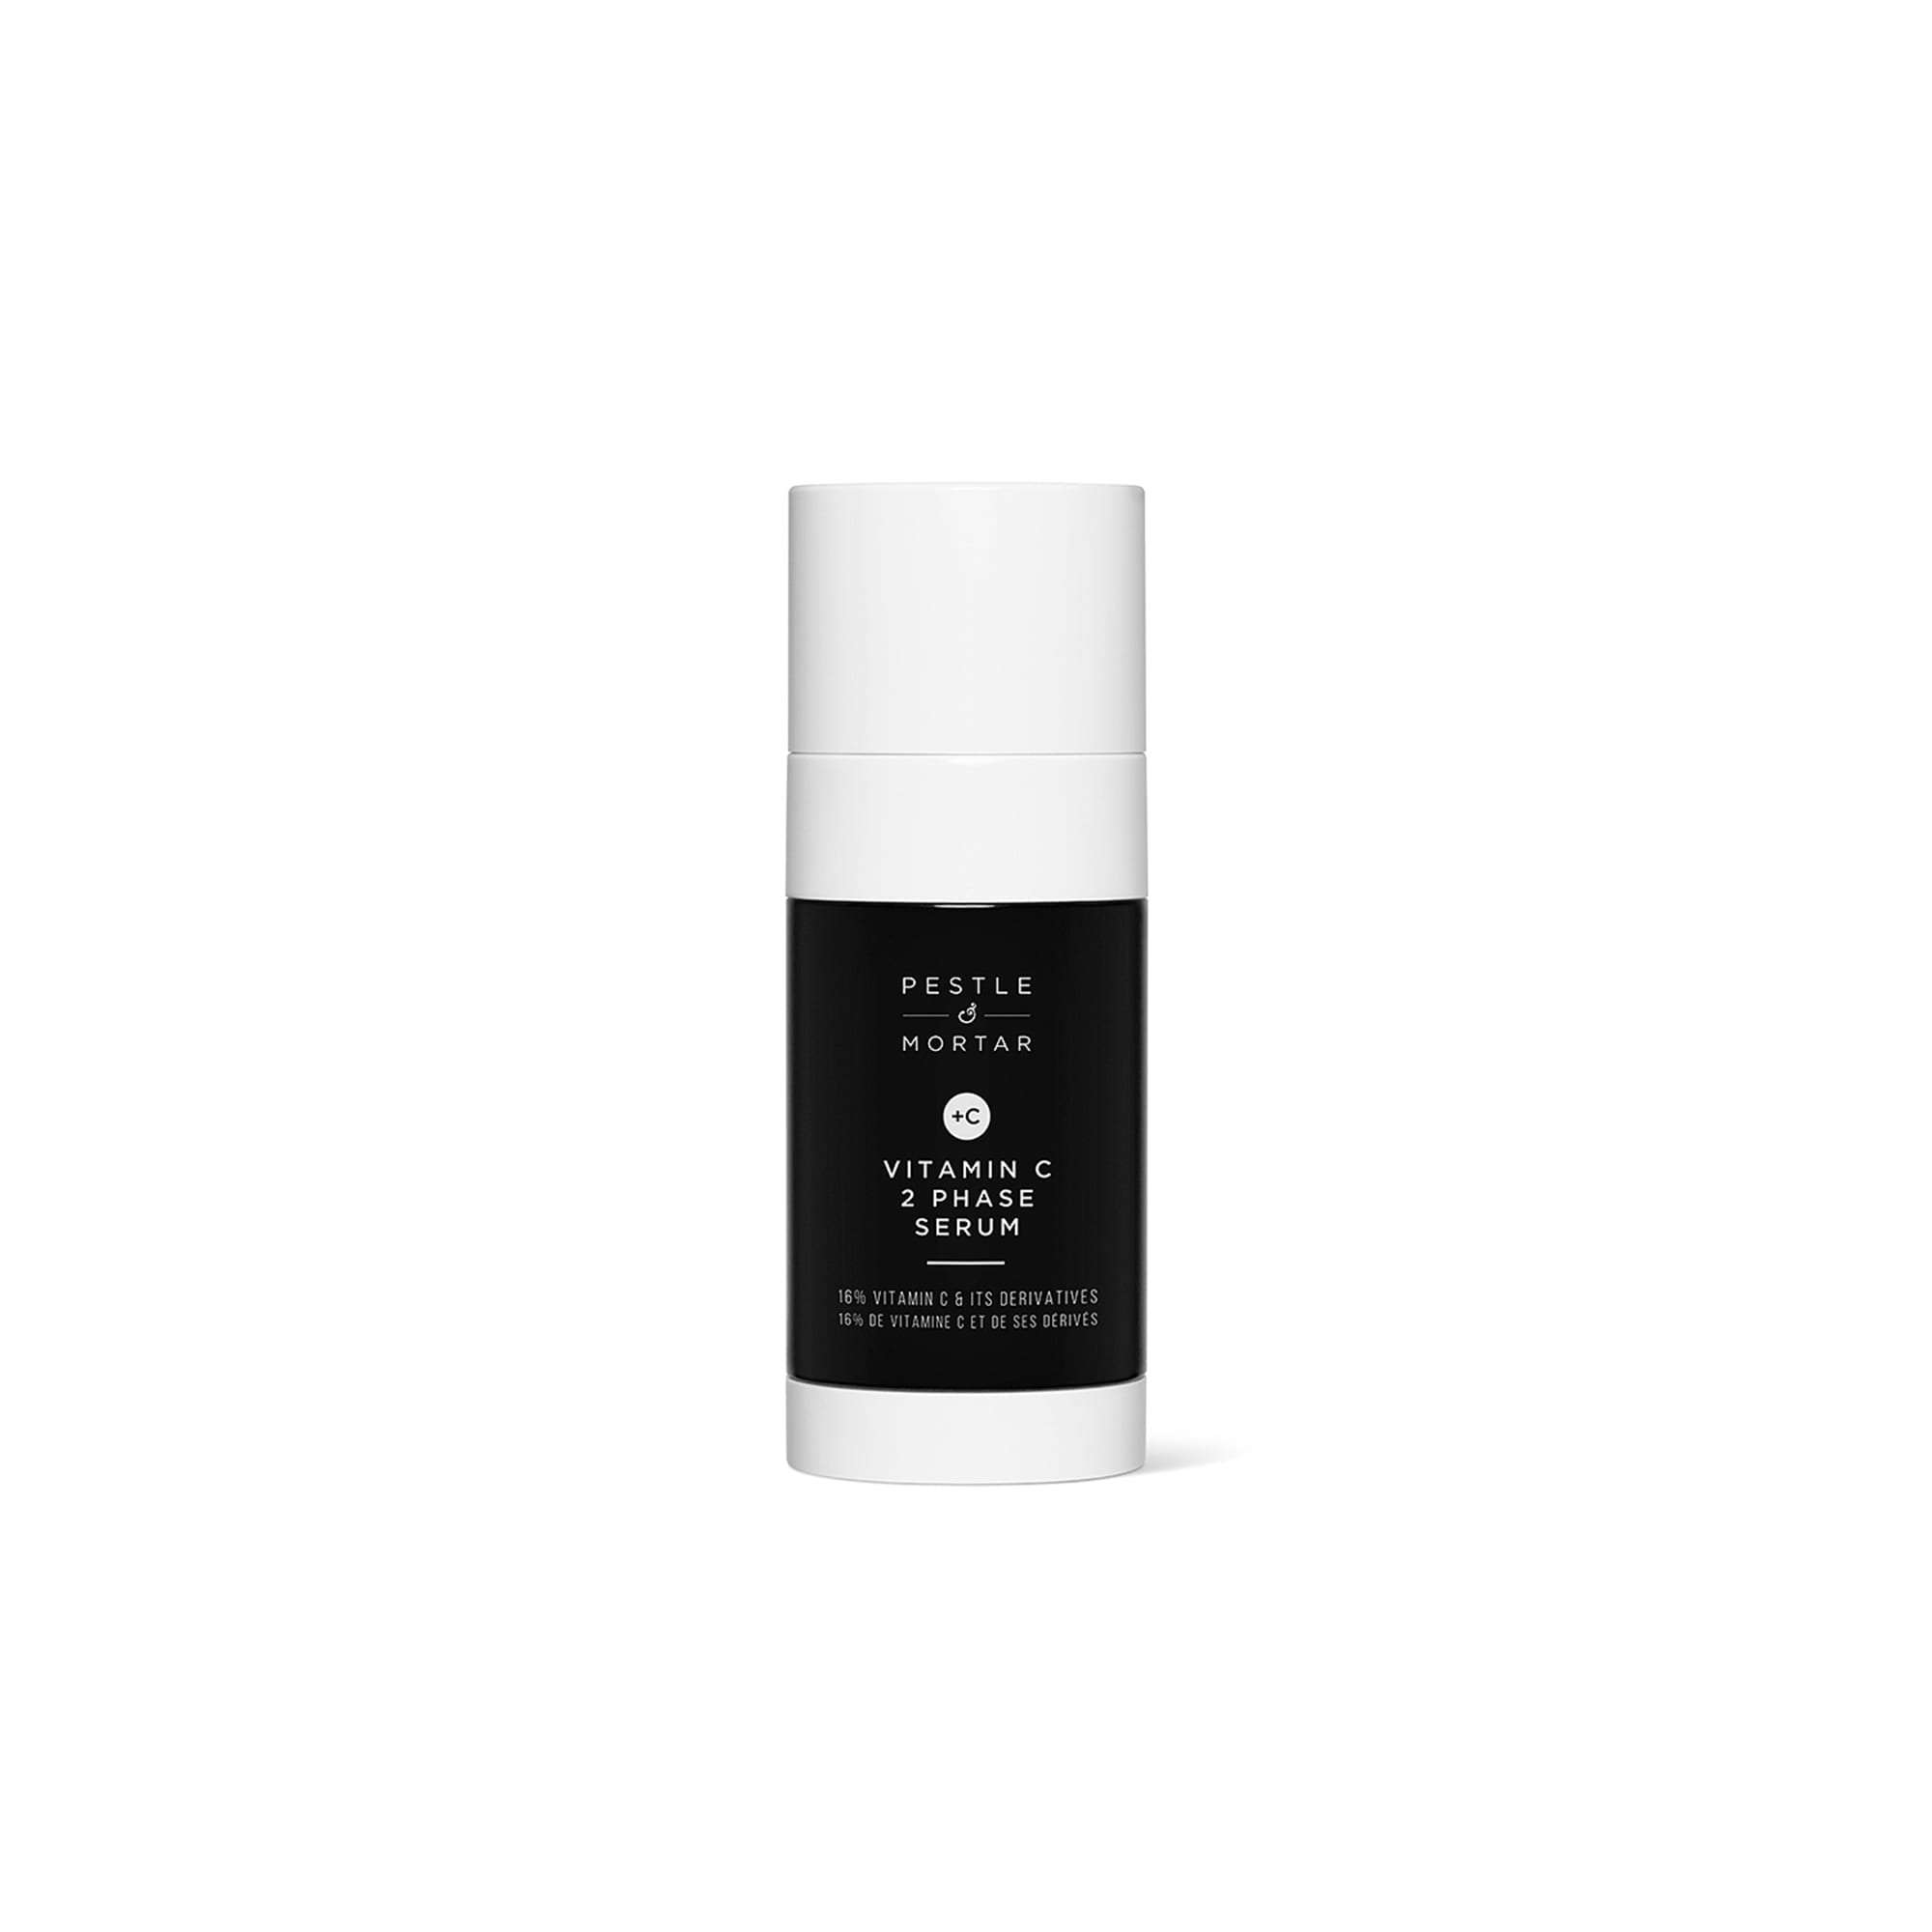 Pestle & Mortar - Vitamin C 2 Phase Serum 40ml